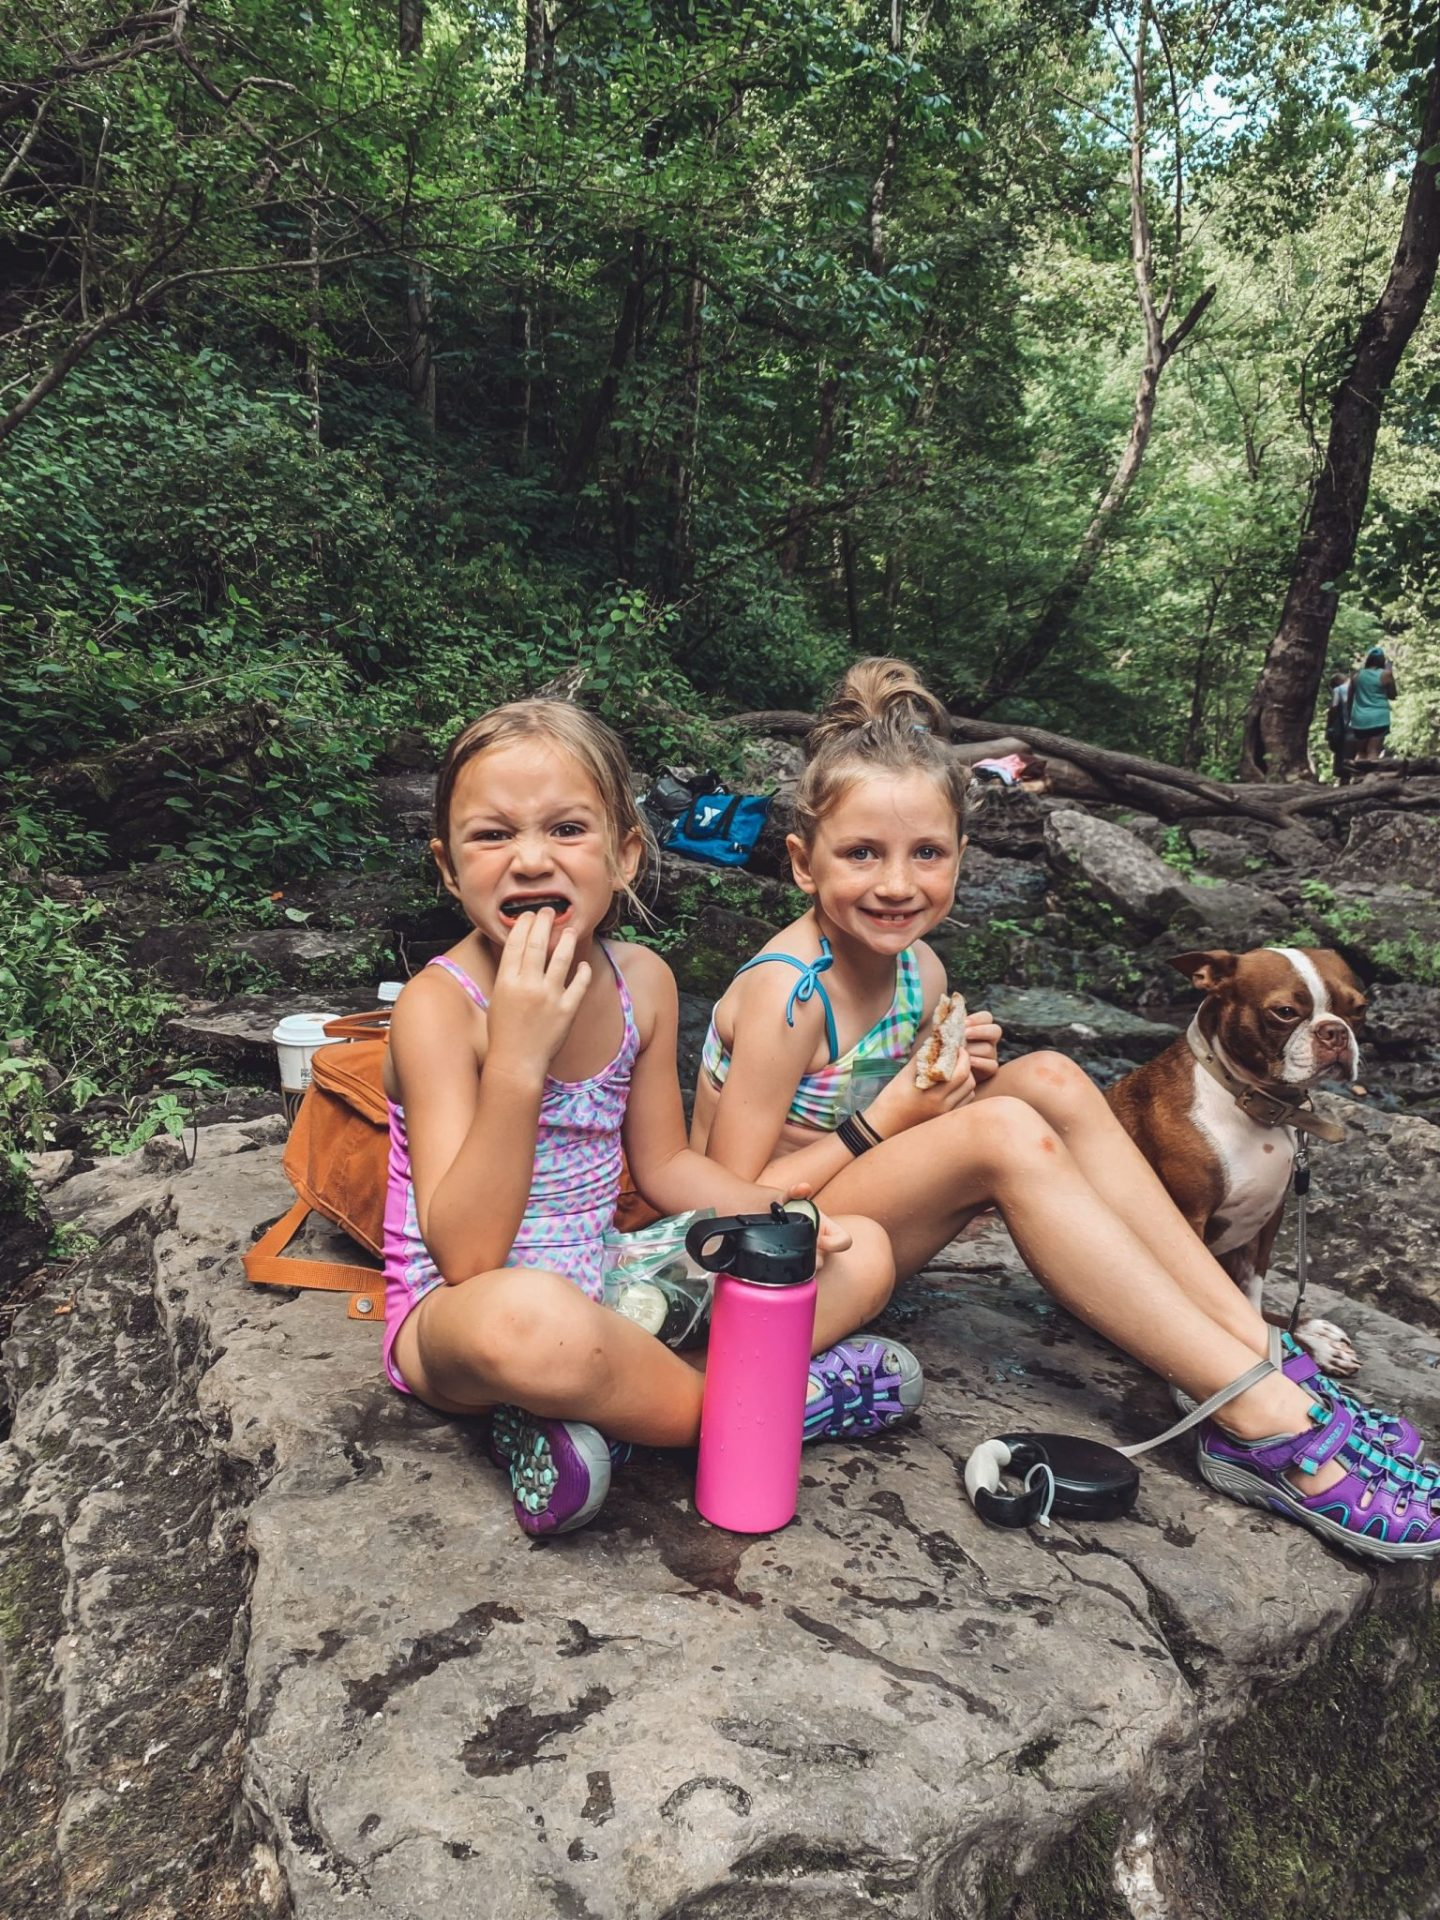 Family-Friendly Waterfall Hiking Trails in Nashville, TN by popular Nashville blog, Modern Day Moguls: image of a two girl and a dog eating lunch at Rutledge Falls in Tullahoma, TN.